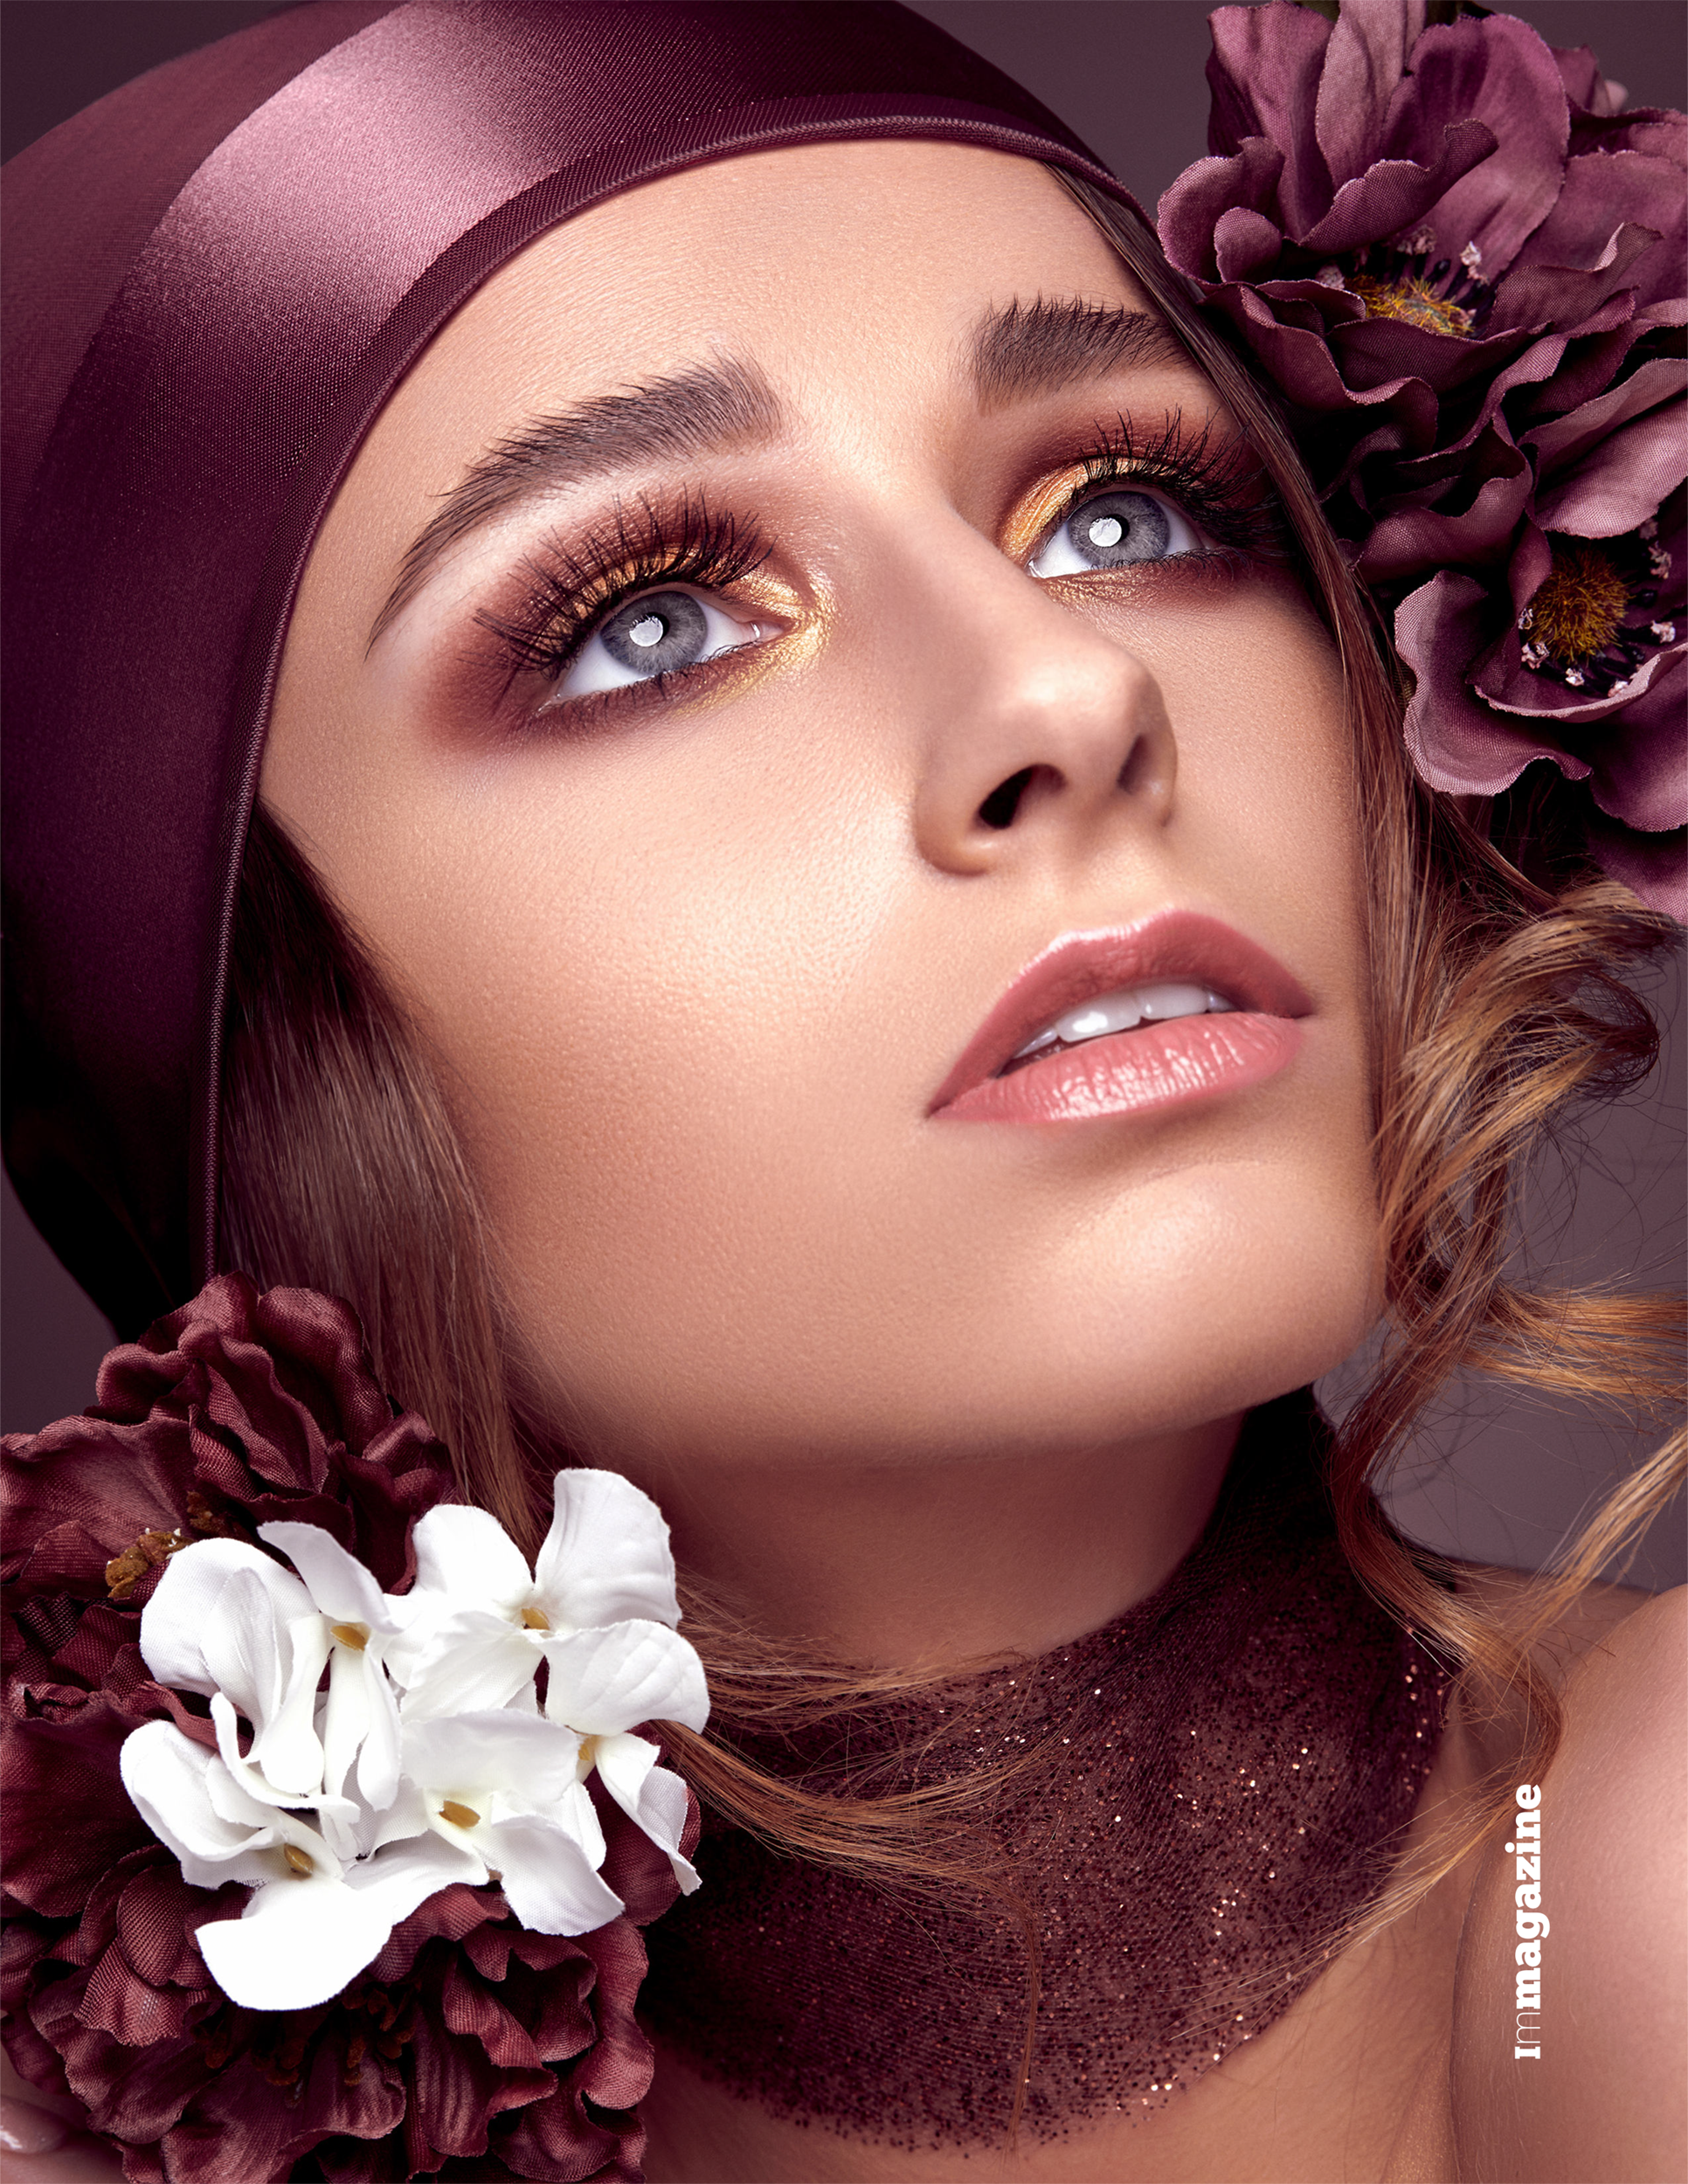 IMIRAGE MAGAZINE - SEPTEMBER 2018   Madame Periwinkle beauty editorial by Antonio Martez, New York Fashion and Beauty Photographer, was featured in the September 2018 edition of Imirage Magazine. The editorial was a Cover & Feature Spread for that edition.